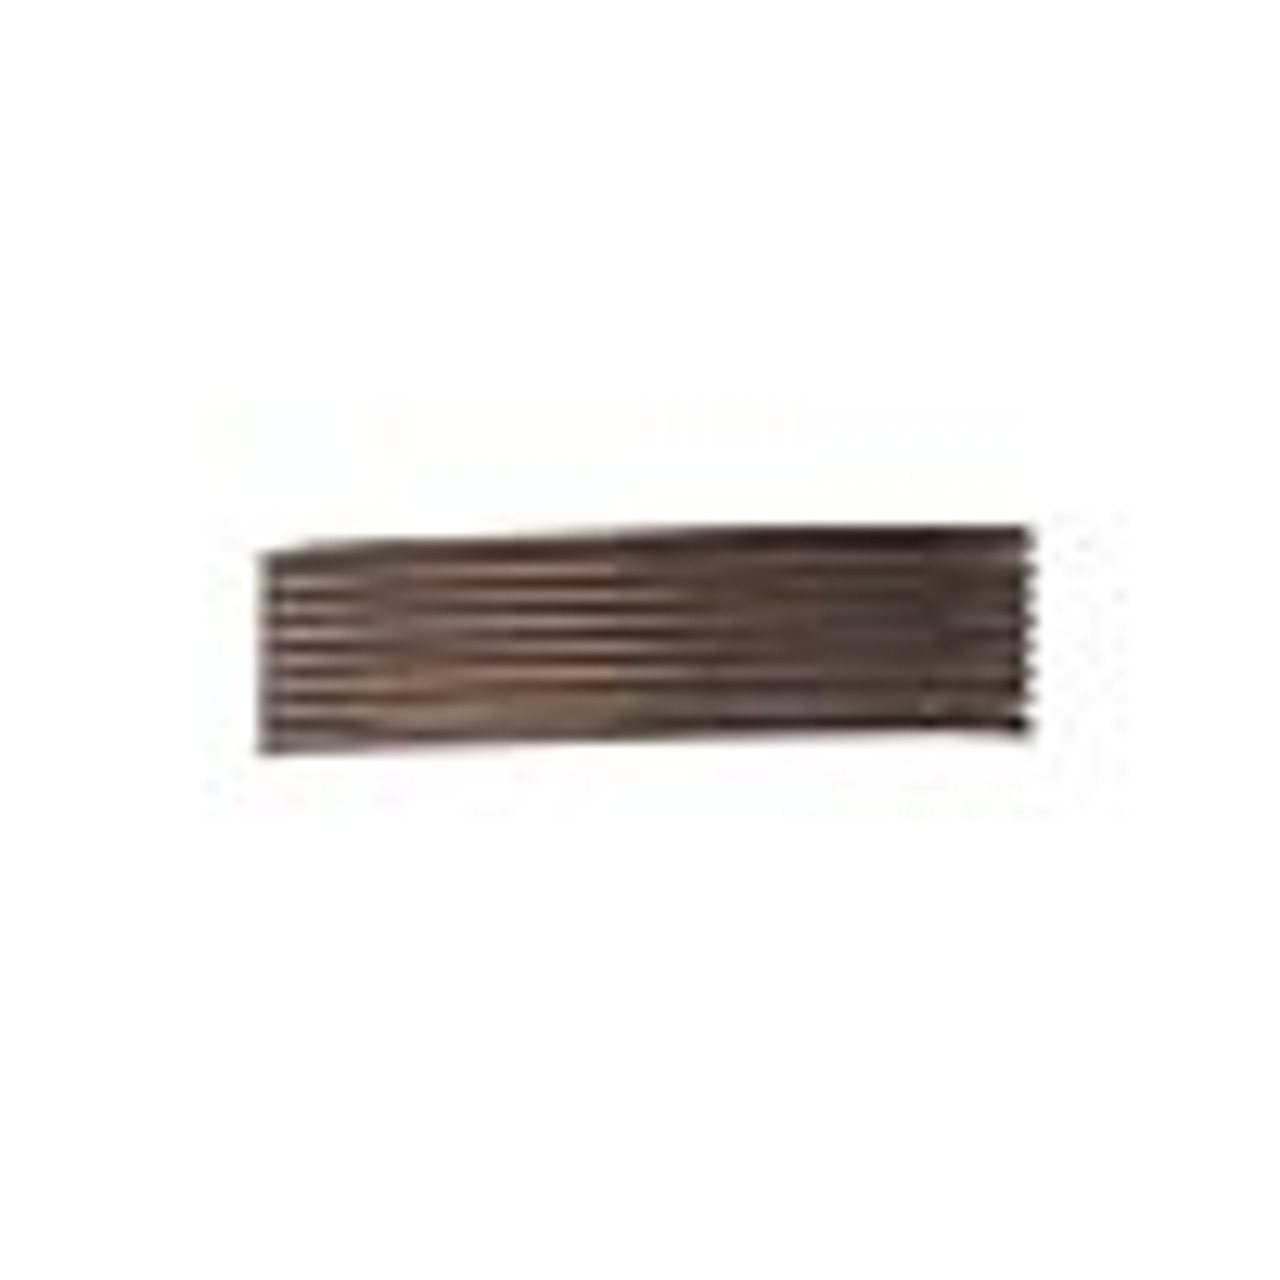 French wire, enamel-coated brass, brown, 0.7-0.9mm tube. Sold per  19-1/2 inch strands